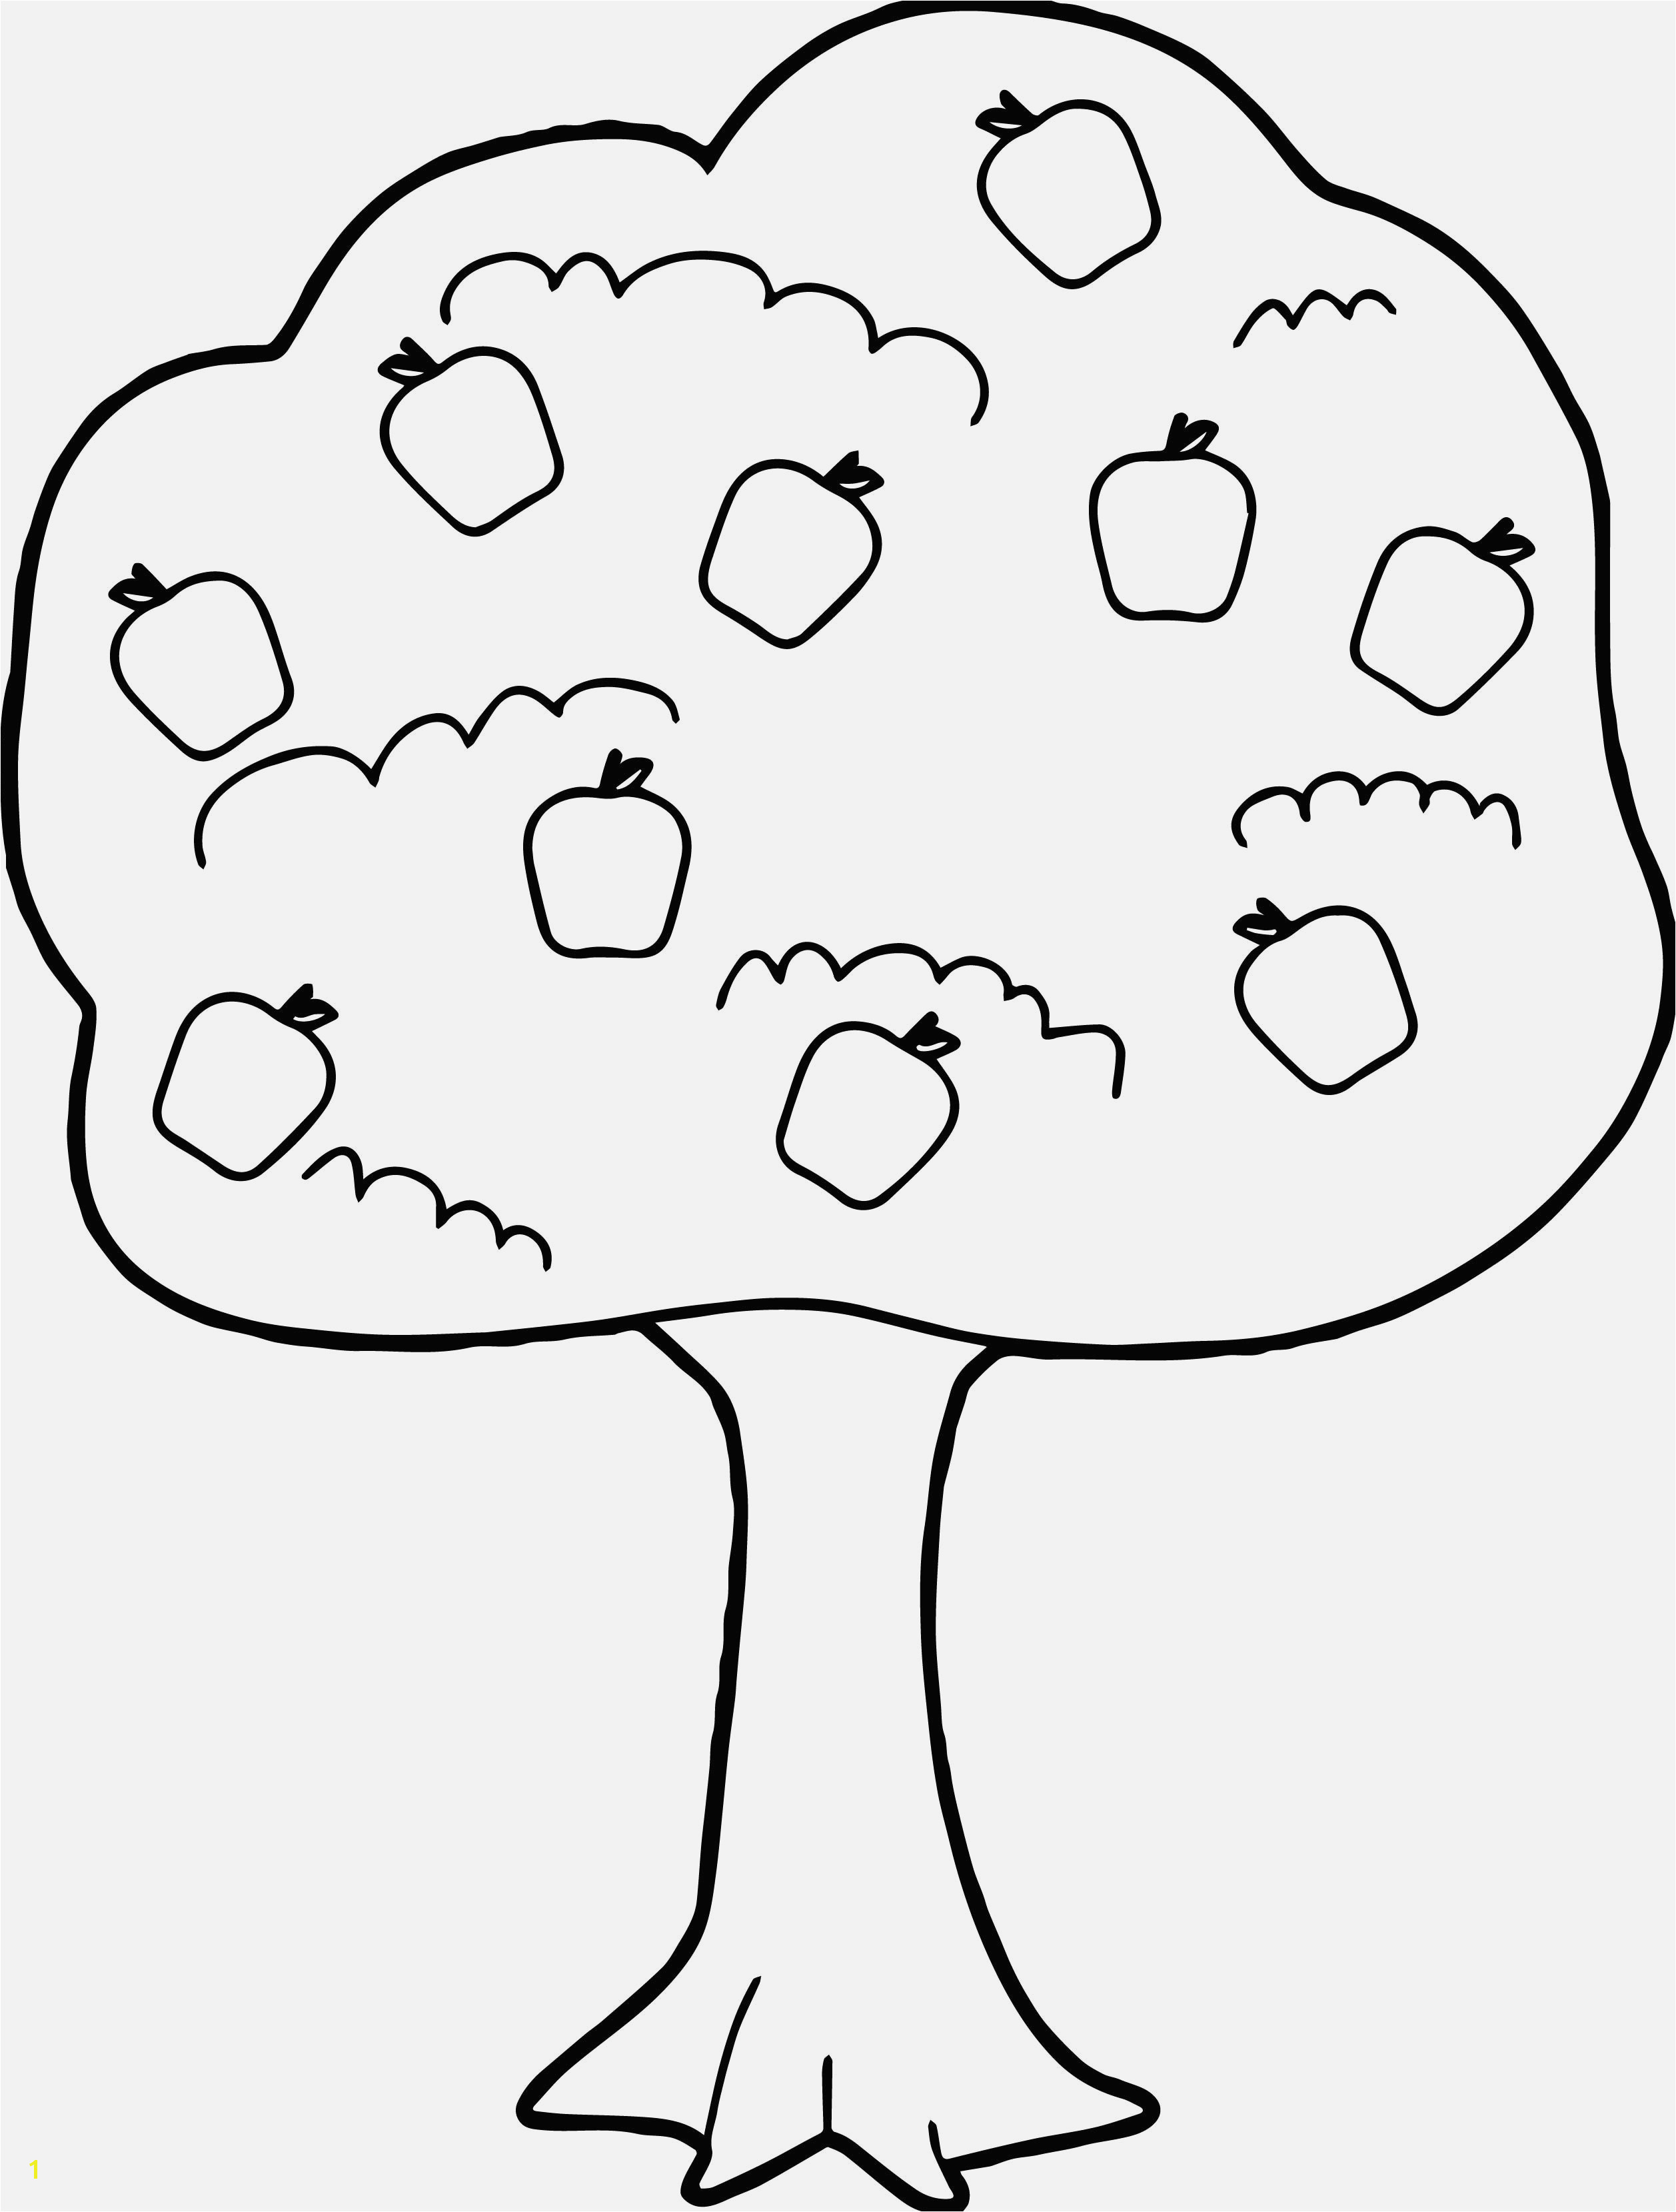 Apple Tree Coloring Page Easy and Fun Preschool Coloring Pages Apple Tree Inspirational Printable Coloring